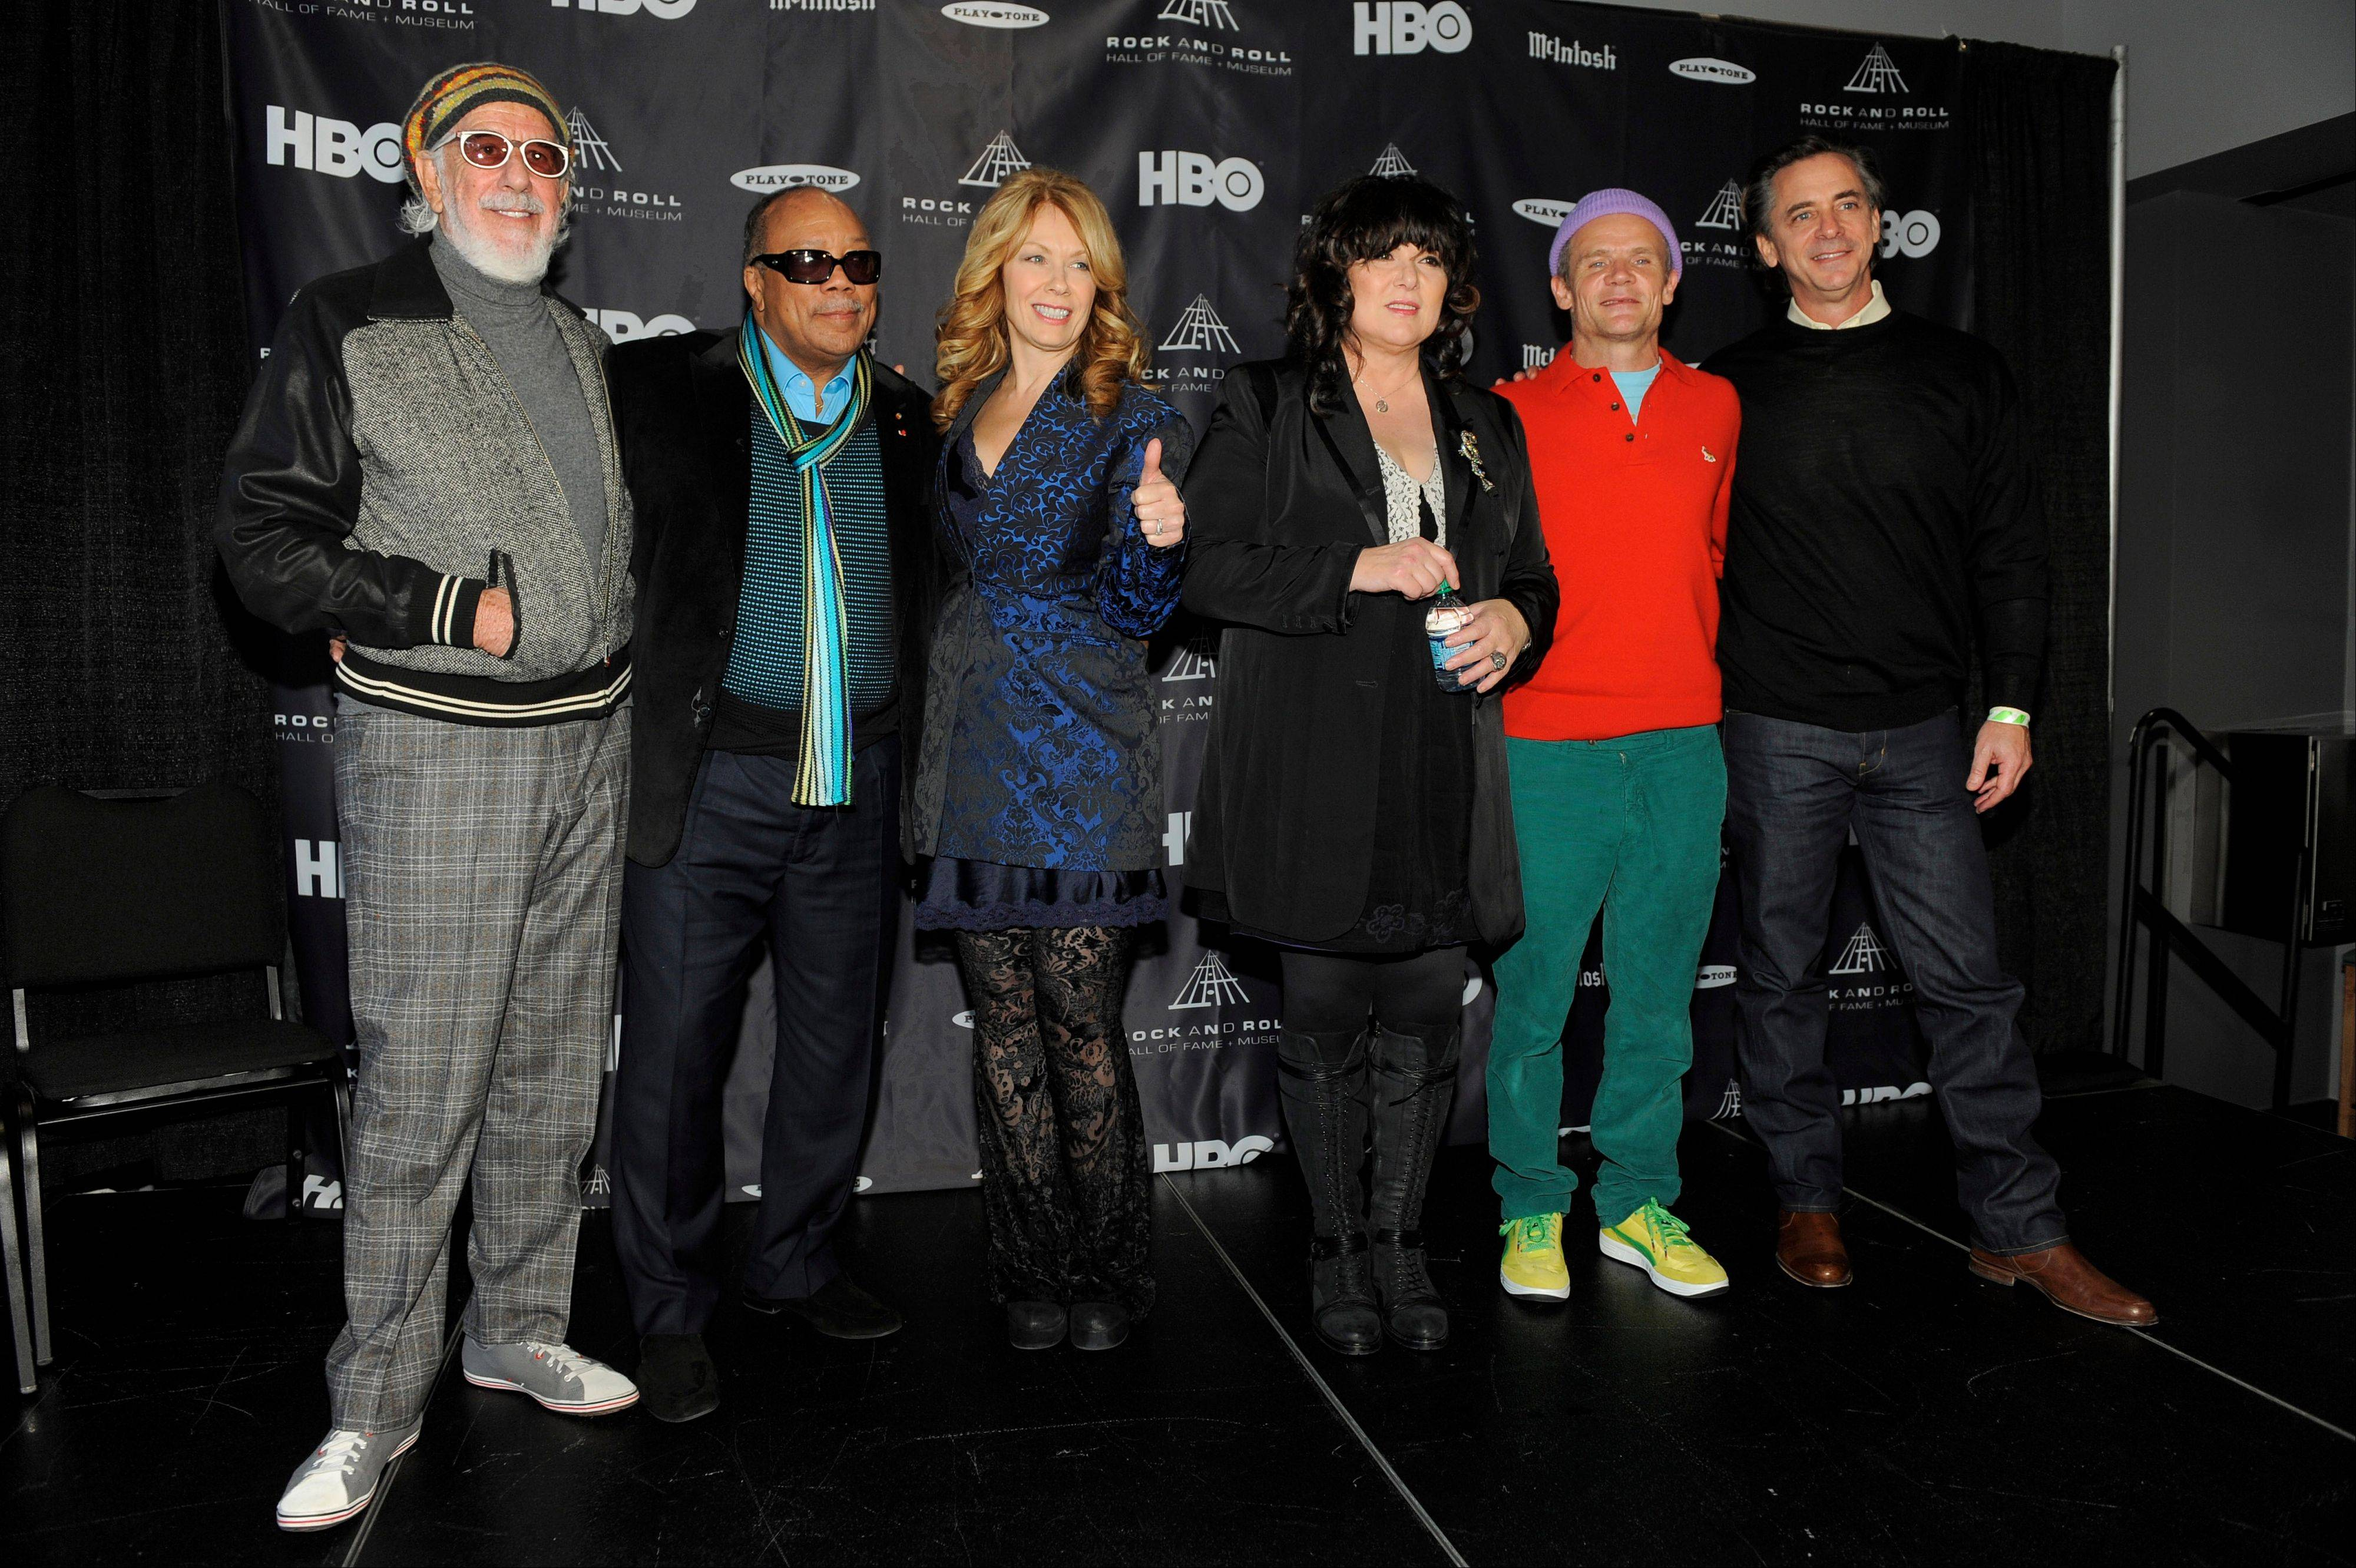 Rock and Roll Hall of Fame inductees, from left, Lou Adler, Quincy Jones and Nancy and Ann Wilson of Heart pose with 2012 inductee Flea, second from right, and Rock and Roll Hall of Fame President and CEO Joel Peresman Tuesday at a news conference to announce the 2013 inductees in Los Angeles. The 28th Annual Rock and Roll Hall of Fame Induction Ceremony will be held at the Nokia Theatre L.A. Live in Los Angeles on April 18, 2013.